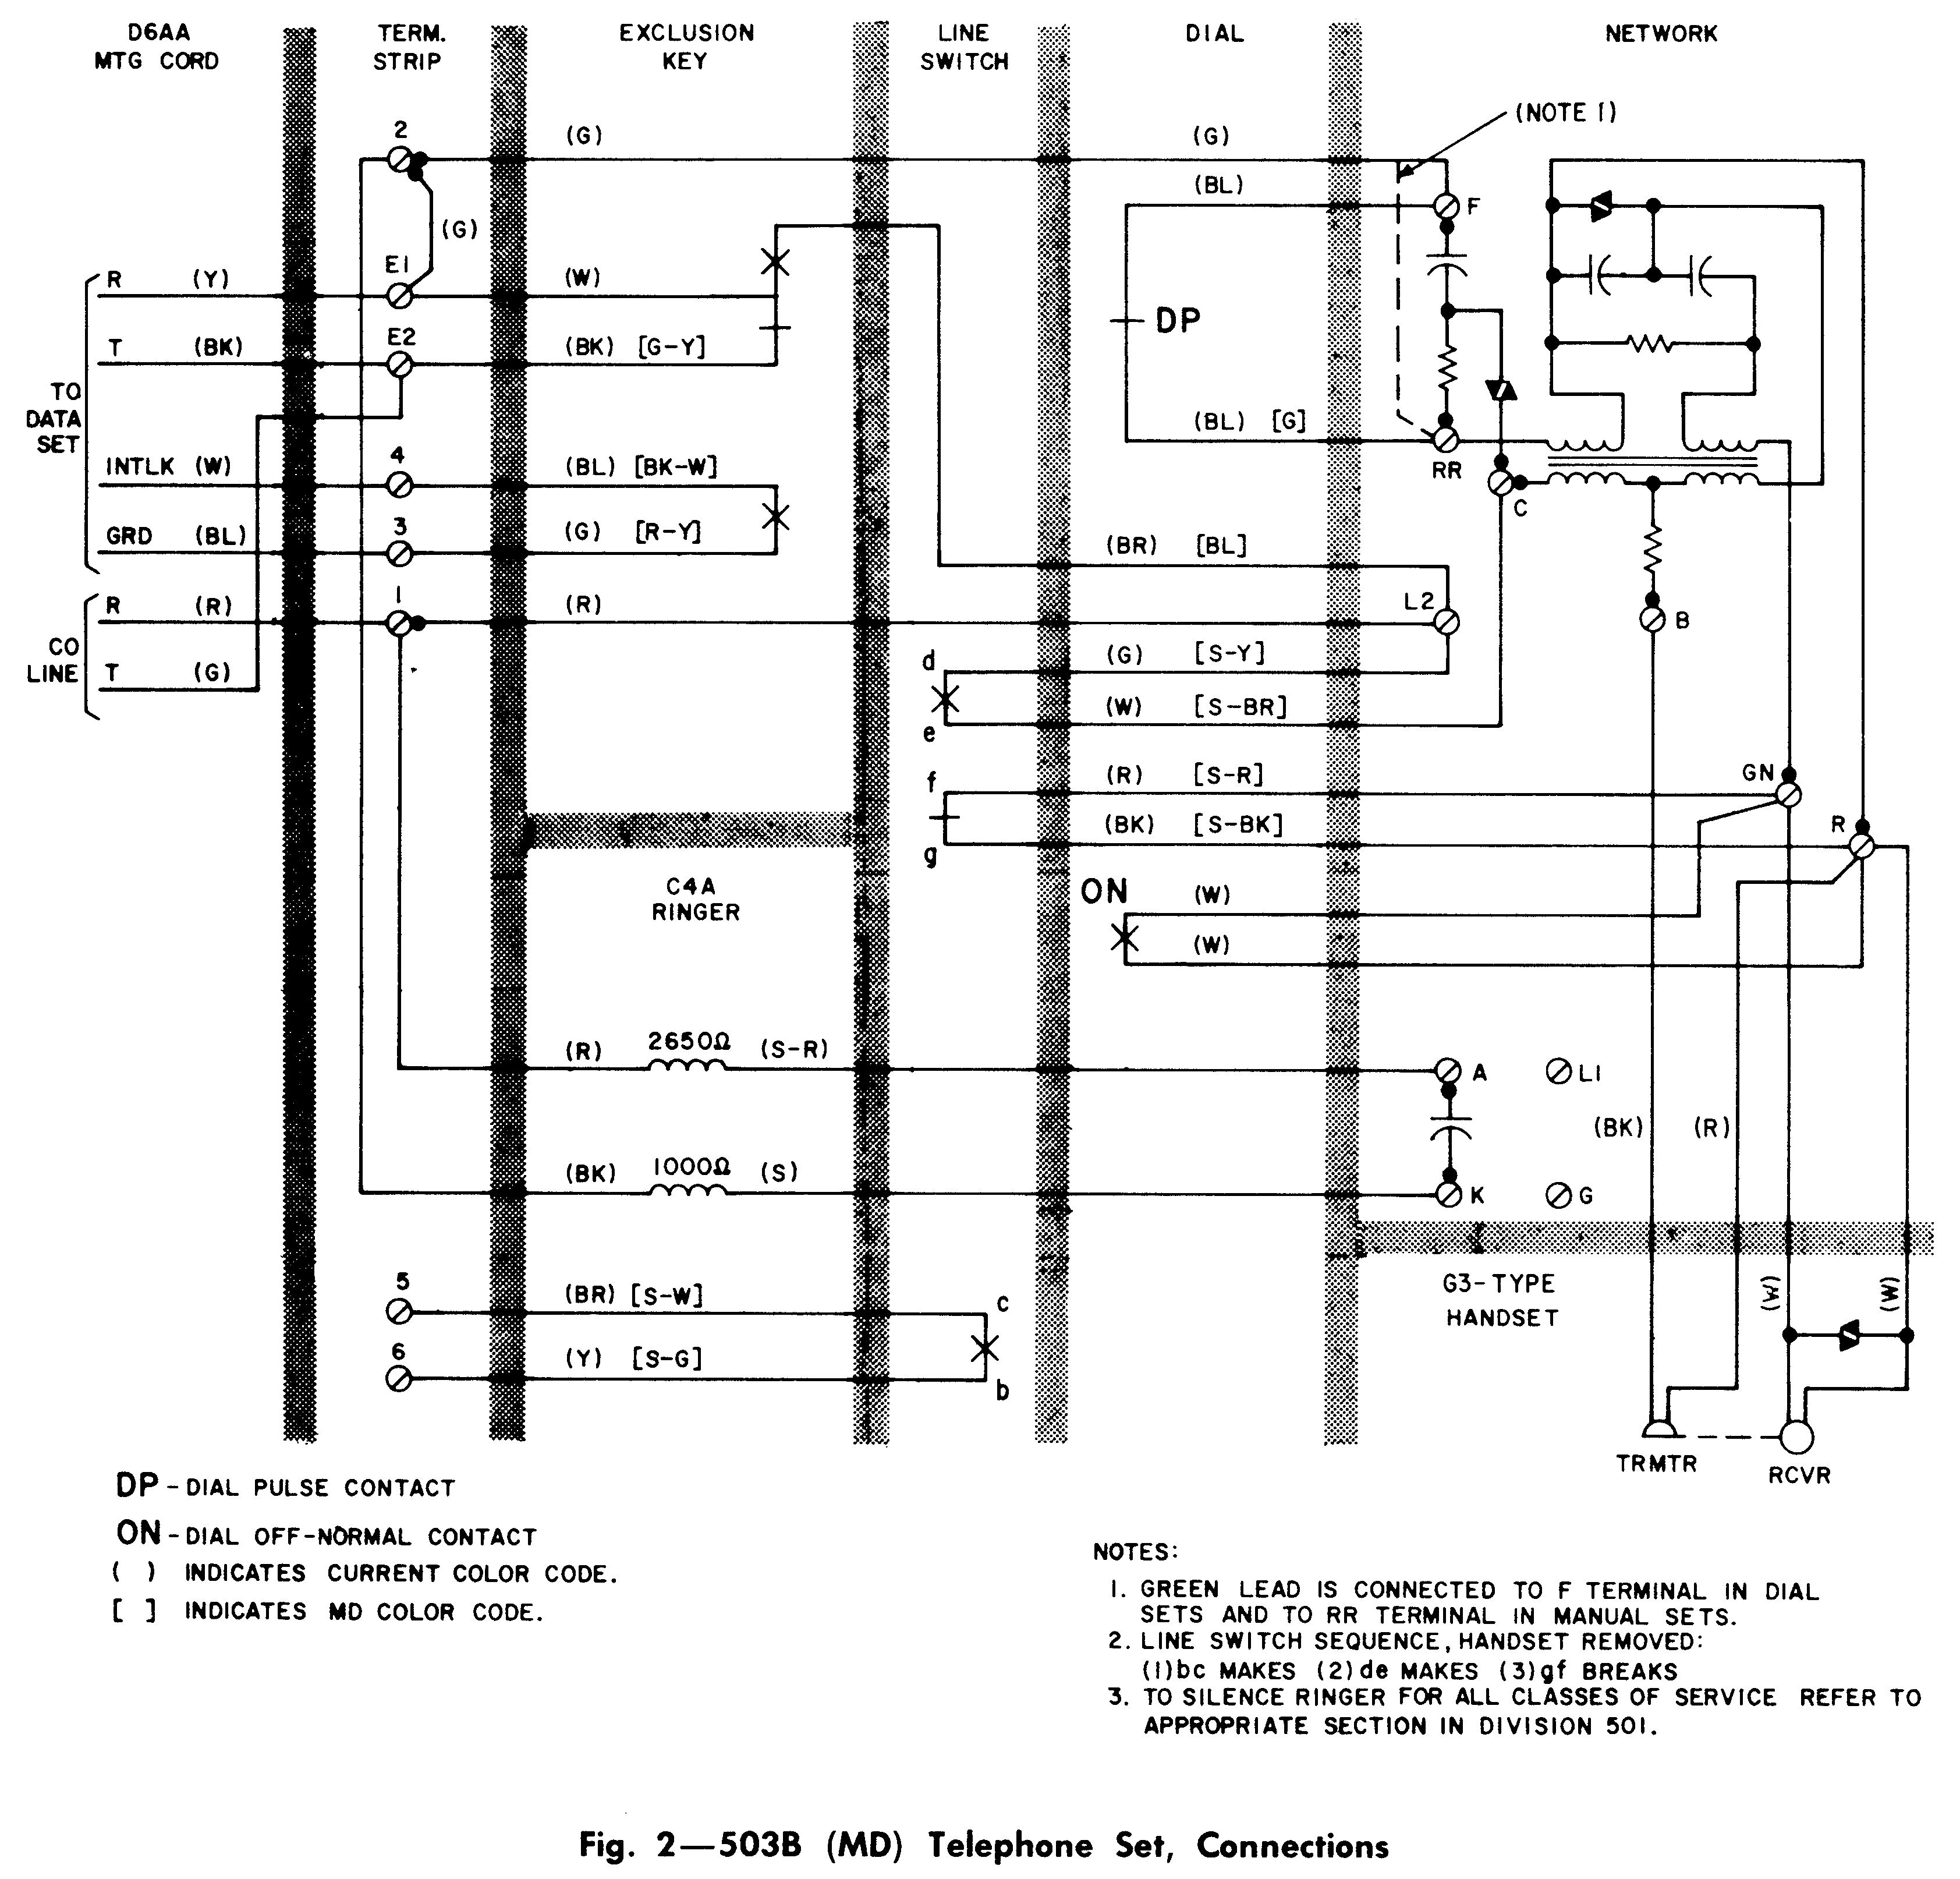 At Amp T Telephone Box Wiring Diagram | Manual E-Books - Telephone Wiring Diagram Outside Box